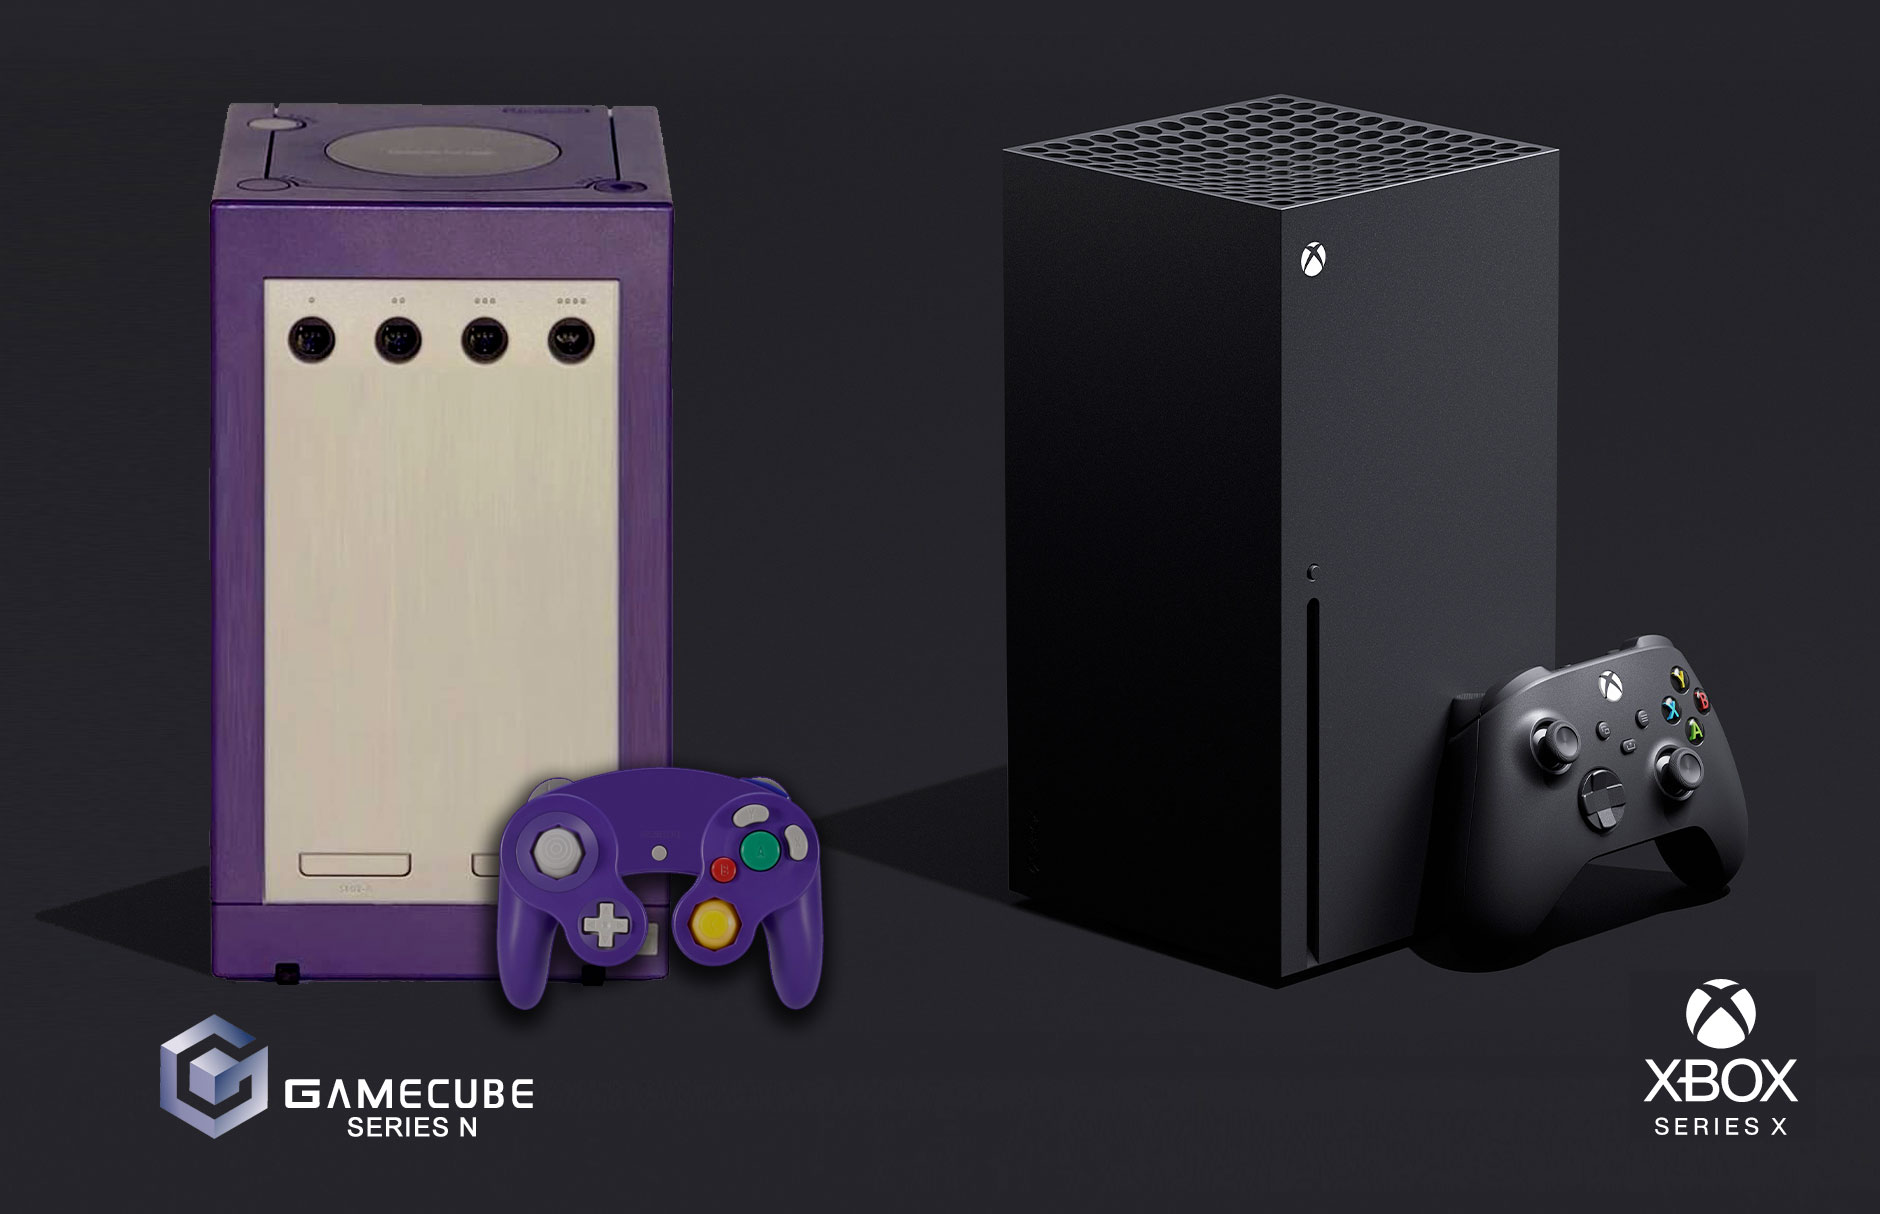 The XBox Series X console does what Ninten-Did